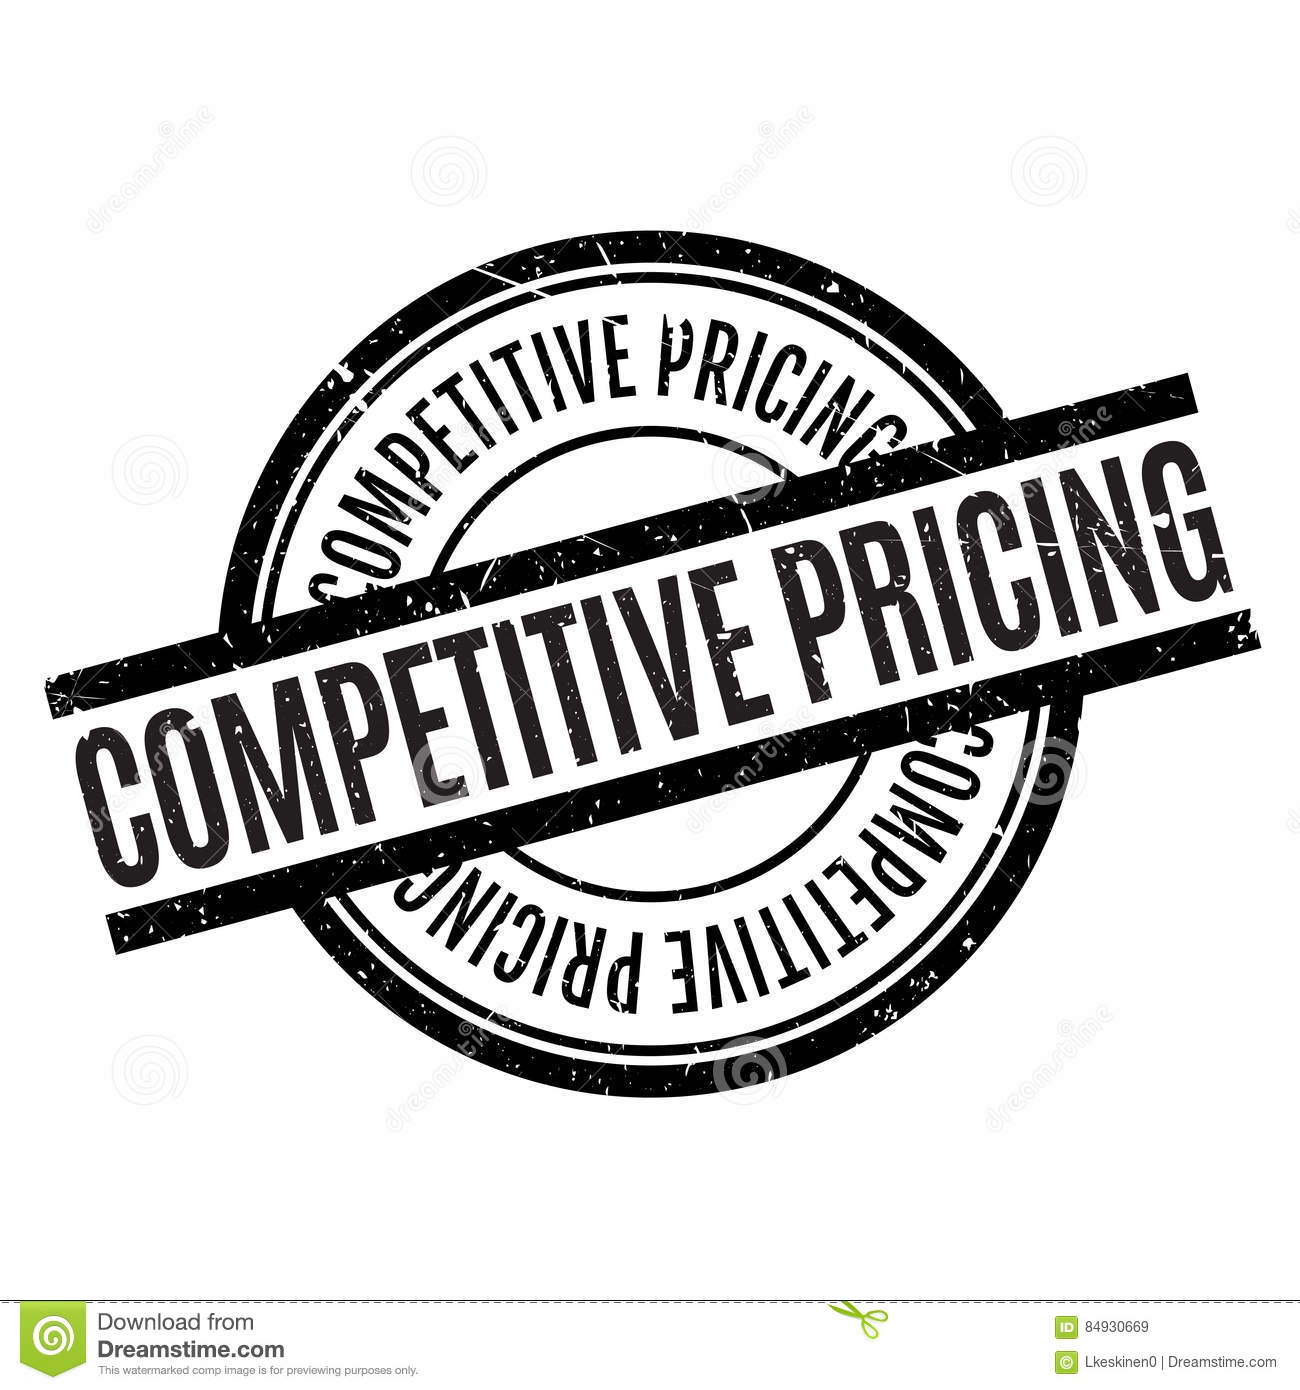 Competitive Pricing: Competitive Pricing Rubber Stamp Stock Illustration